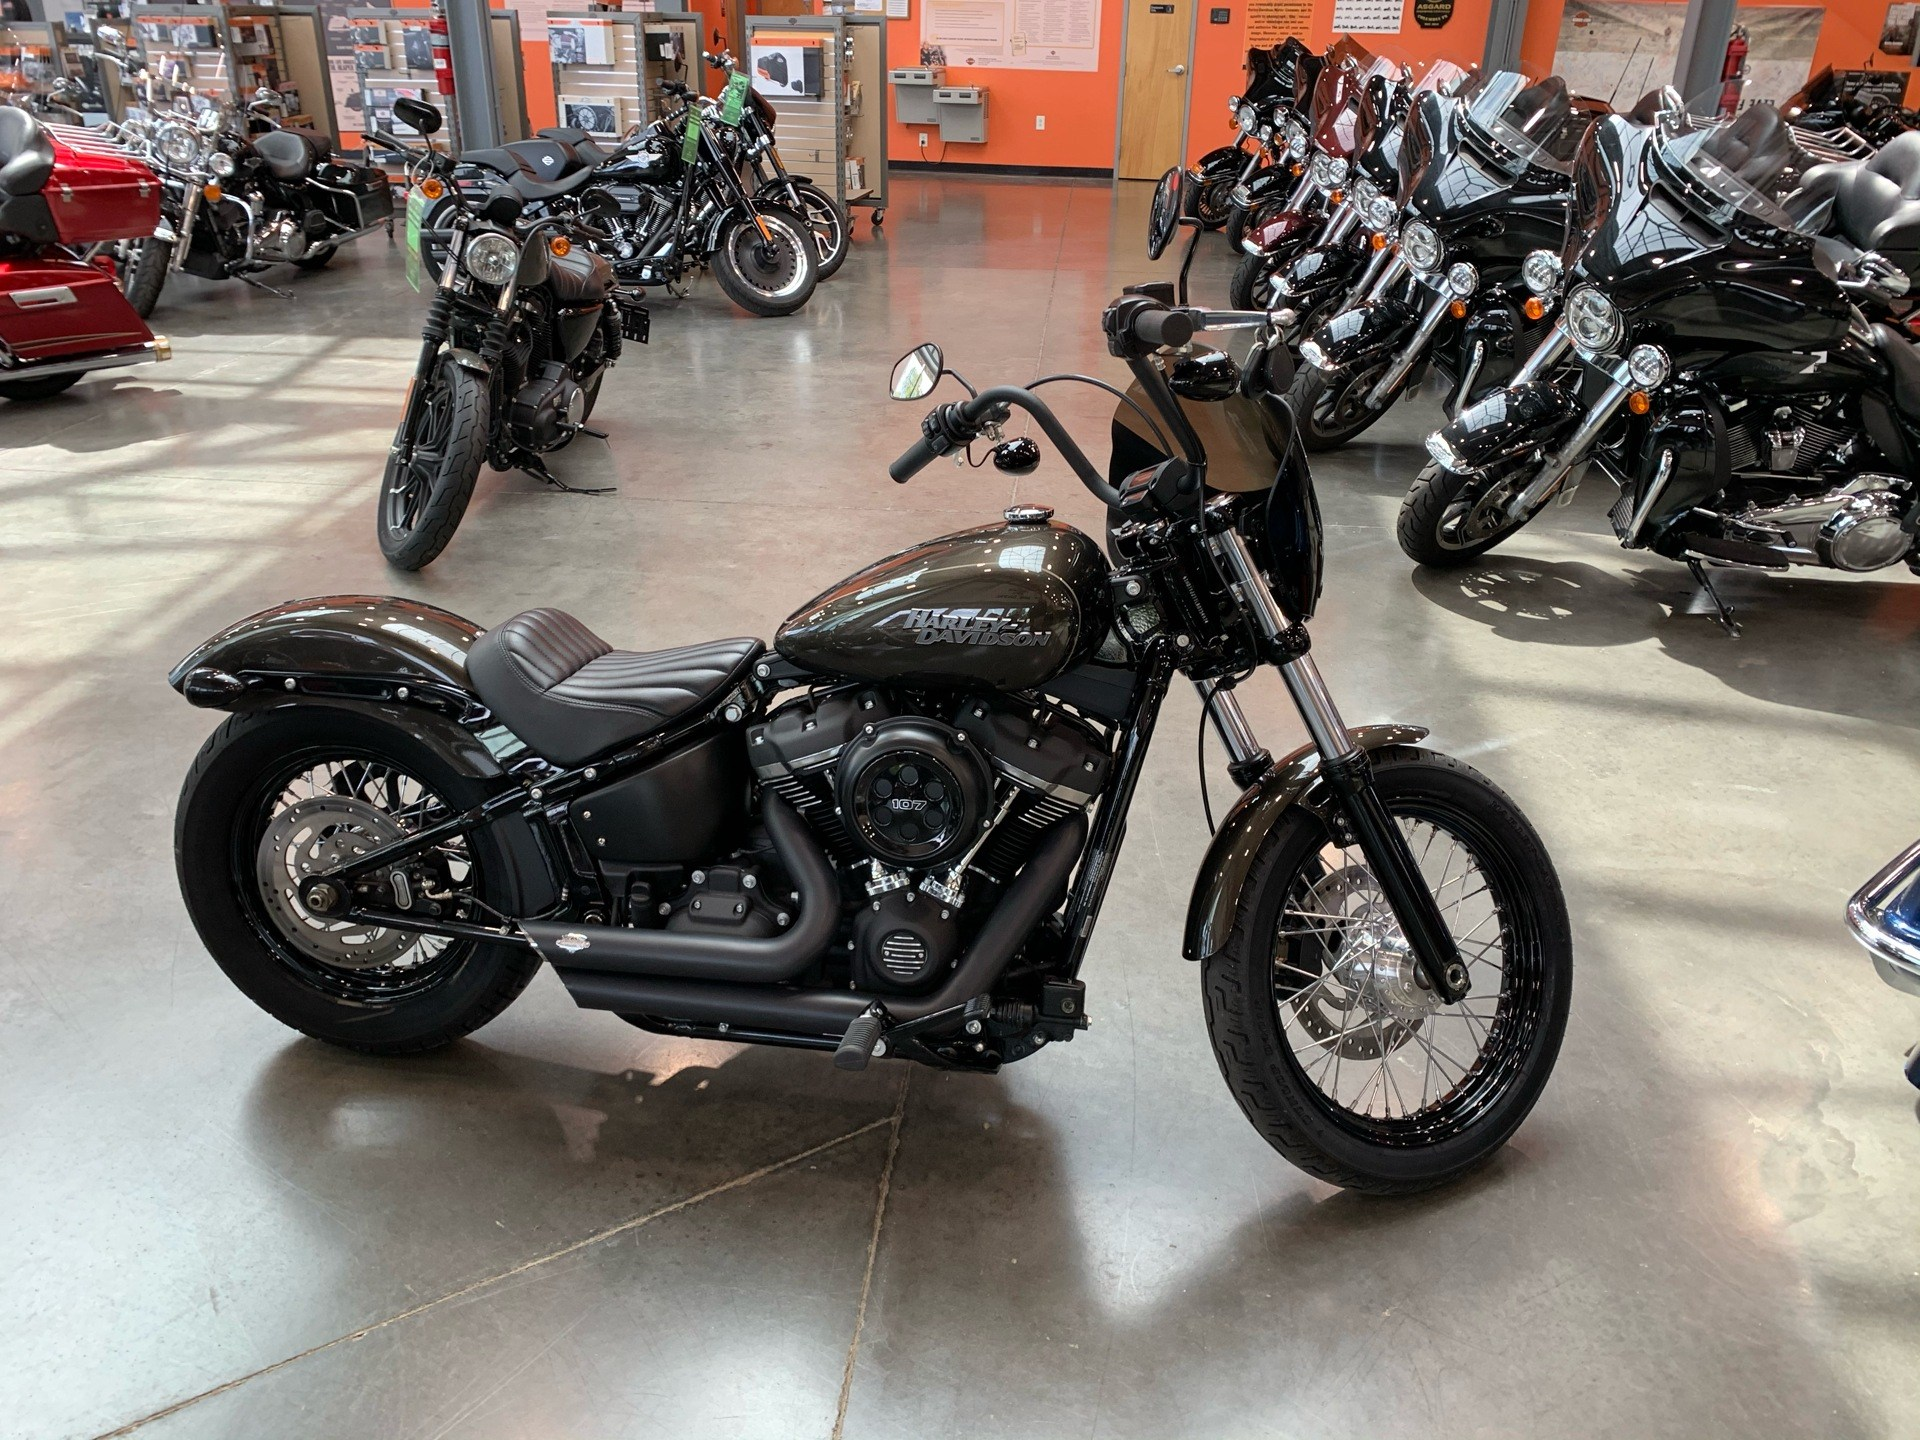 2020 Harley-Davidson FXBB STREET BOB in Columbia, Tennessee - Photo 1